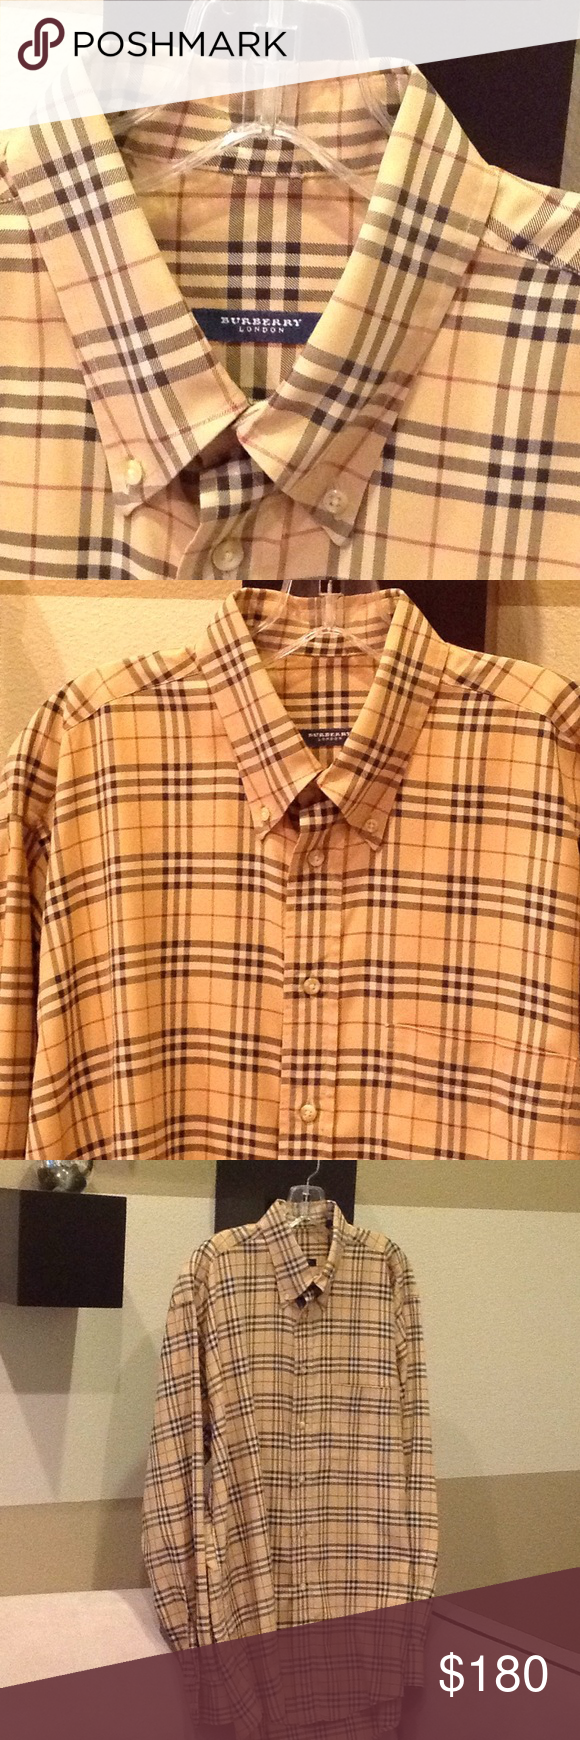 5ba8e811fa490 Size L. Burberry London men's long-sleeved nova check print shirt. Button  down collar and front button closure. Tan background with beige, black and  maroon ...